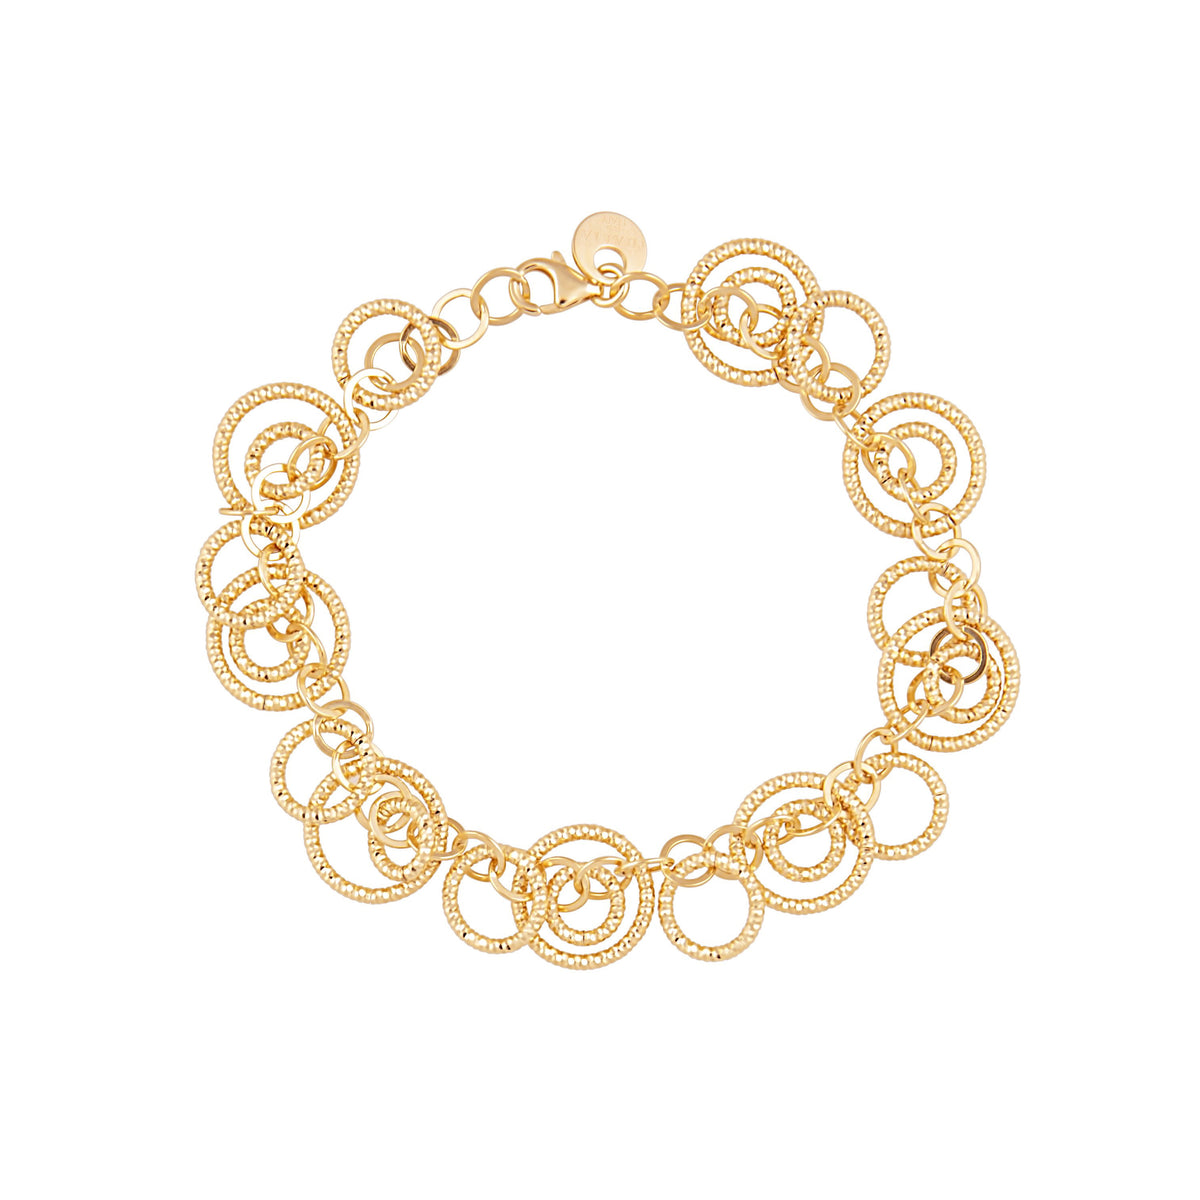 Idalia Jewelry The Circle Chain Link Bracelet Gold